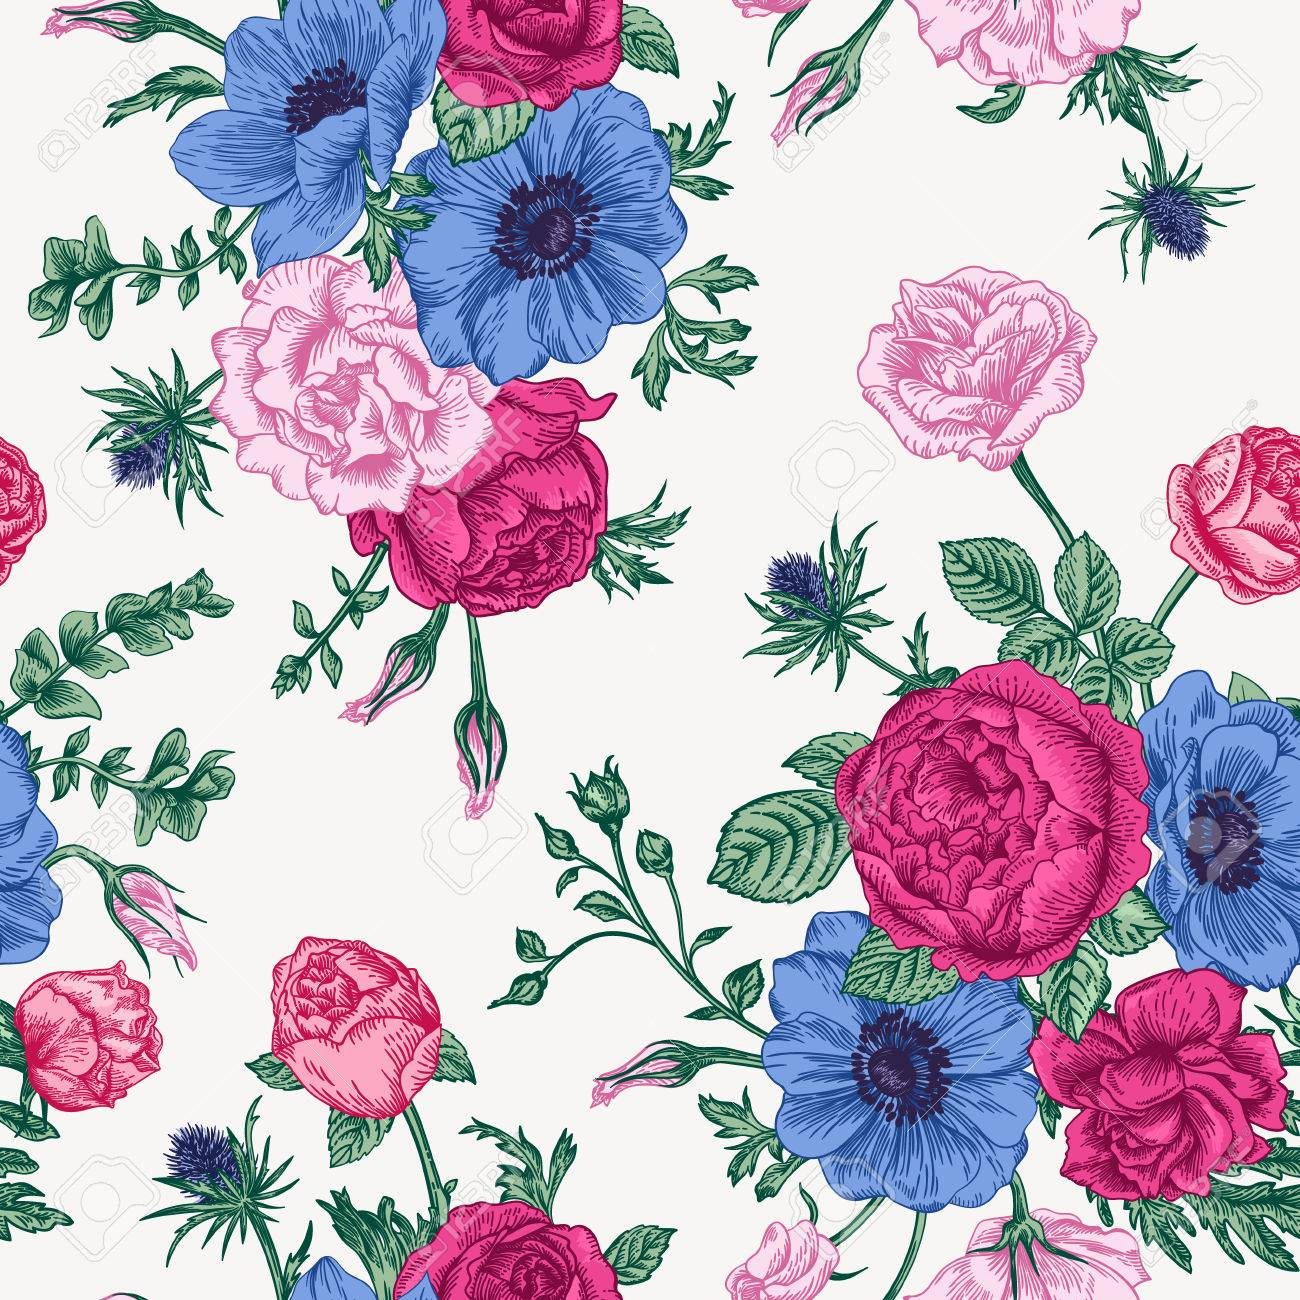 Seamless Floral Pattern With Bouquet Of Colorful Flowers On A